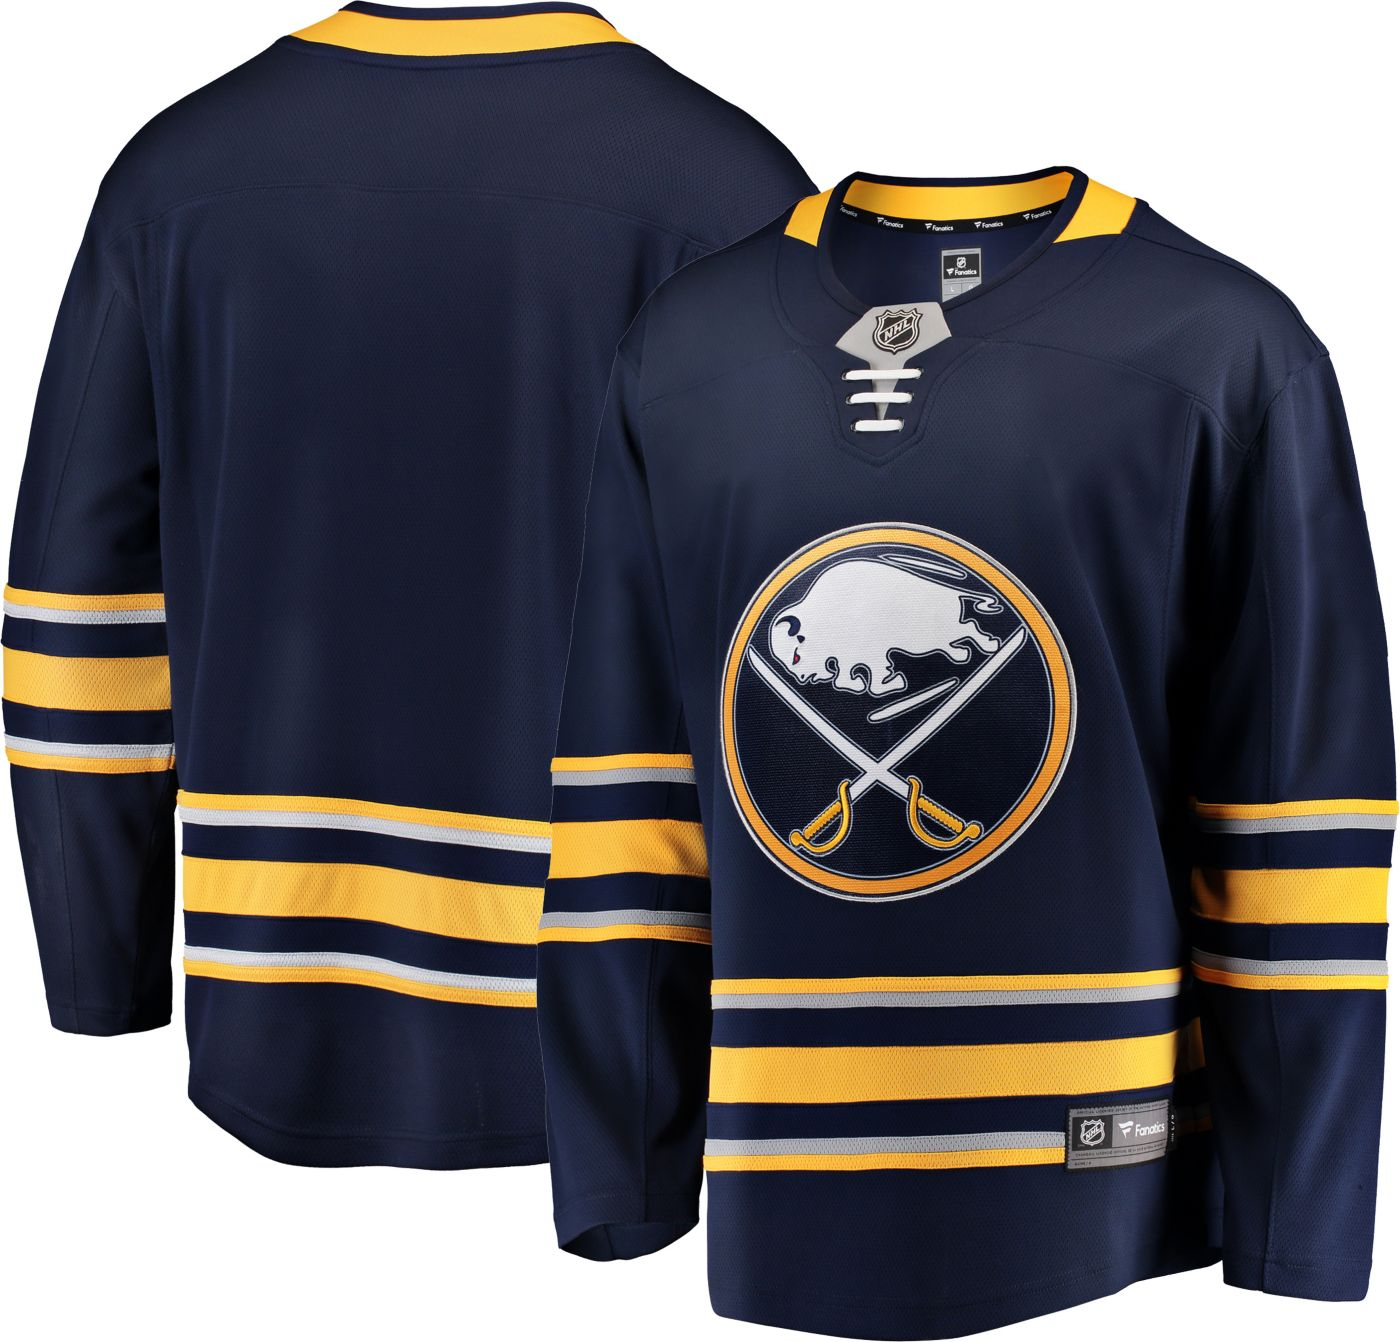 NHL Men's Buffalo Sabres Breakaway Home Replica Jersey